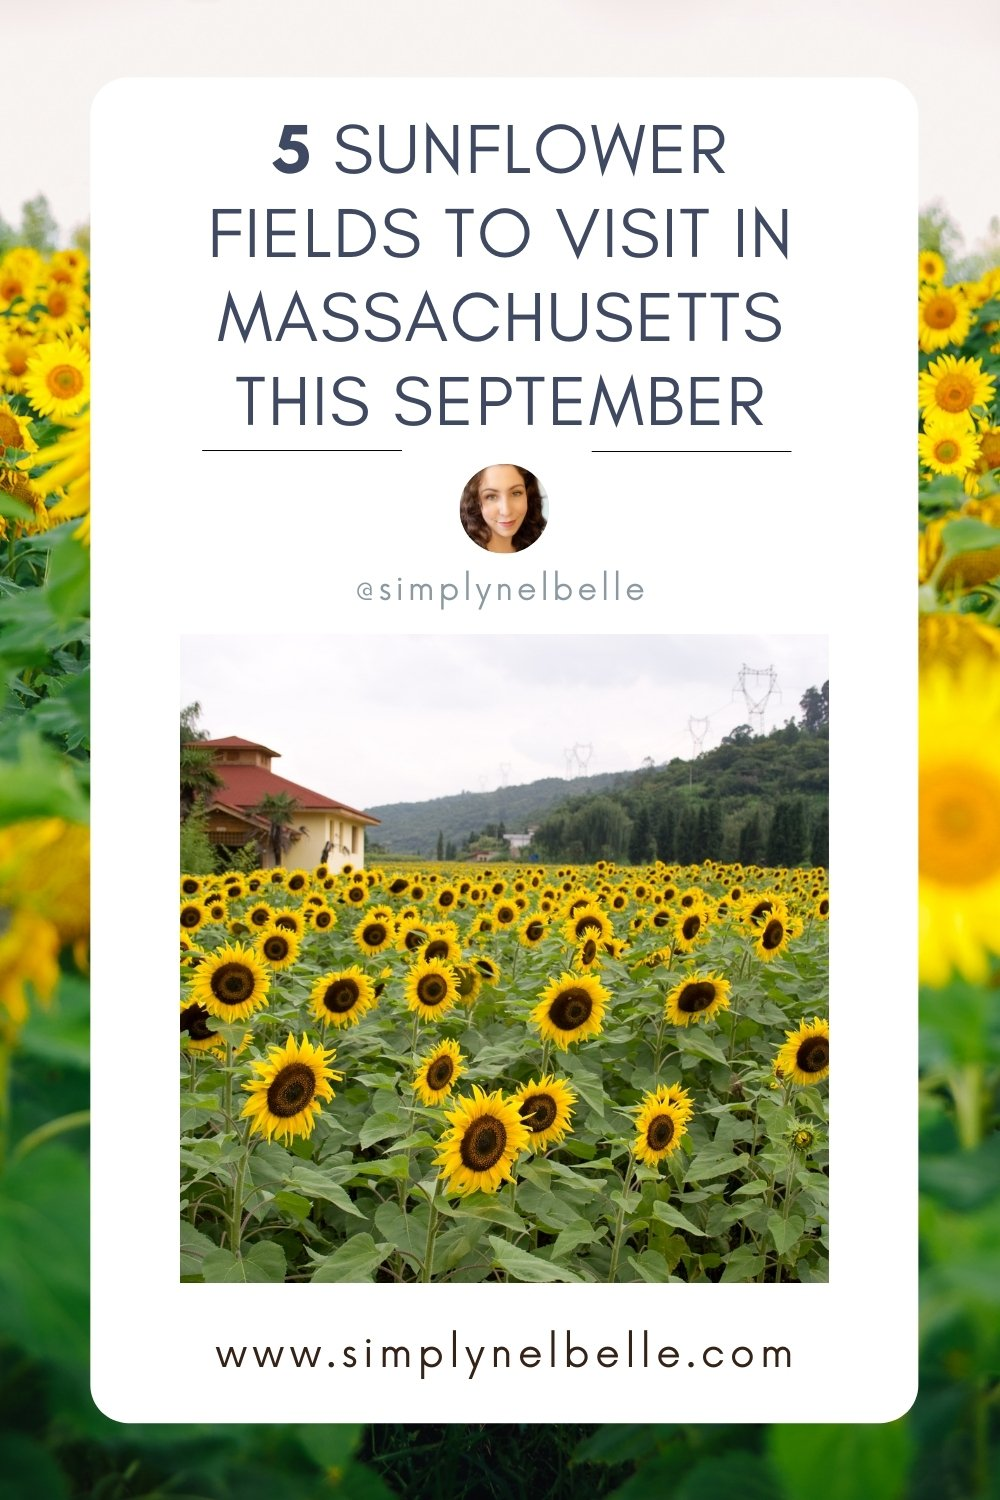 Simply Nel Belle - Pinterest Image - It is time to catch the peak blooms of sunflower fields in MA. Support the farms on this list by visiting their sunflower fields this season. Sunflower fields are a perfect goodbye to summer and a hello to fall.